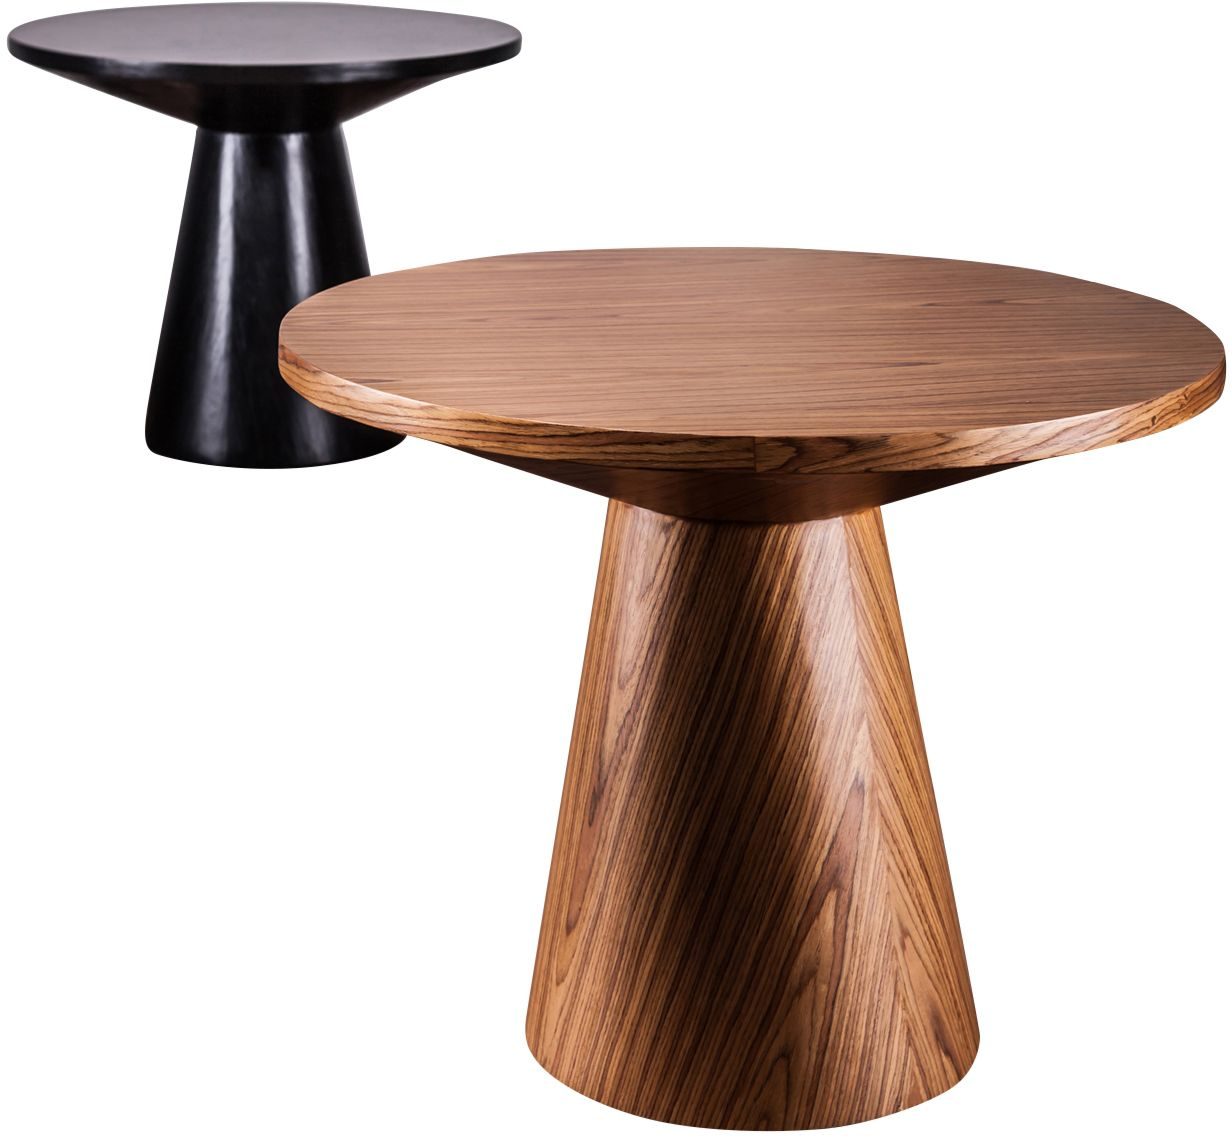 Eyre Side Table Side Table End Tables Furniture [ 1136 x 1232 Pixel ]